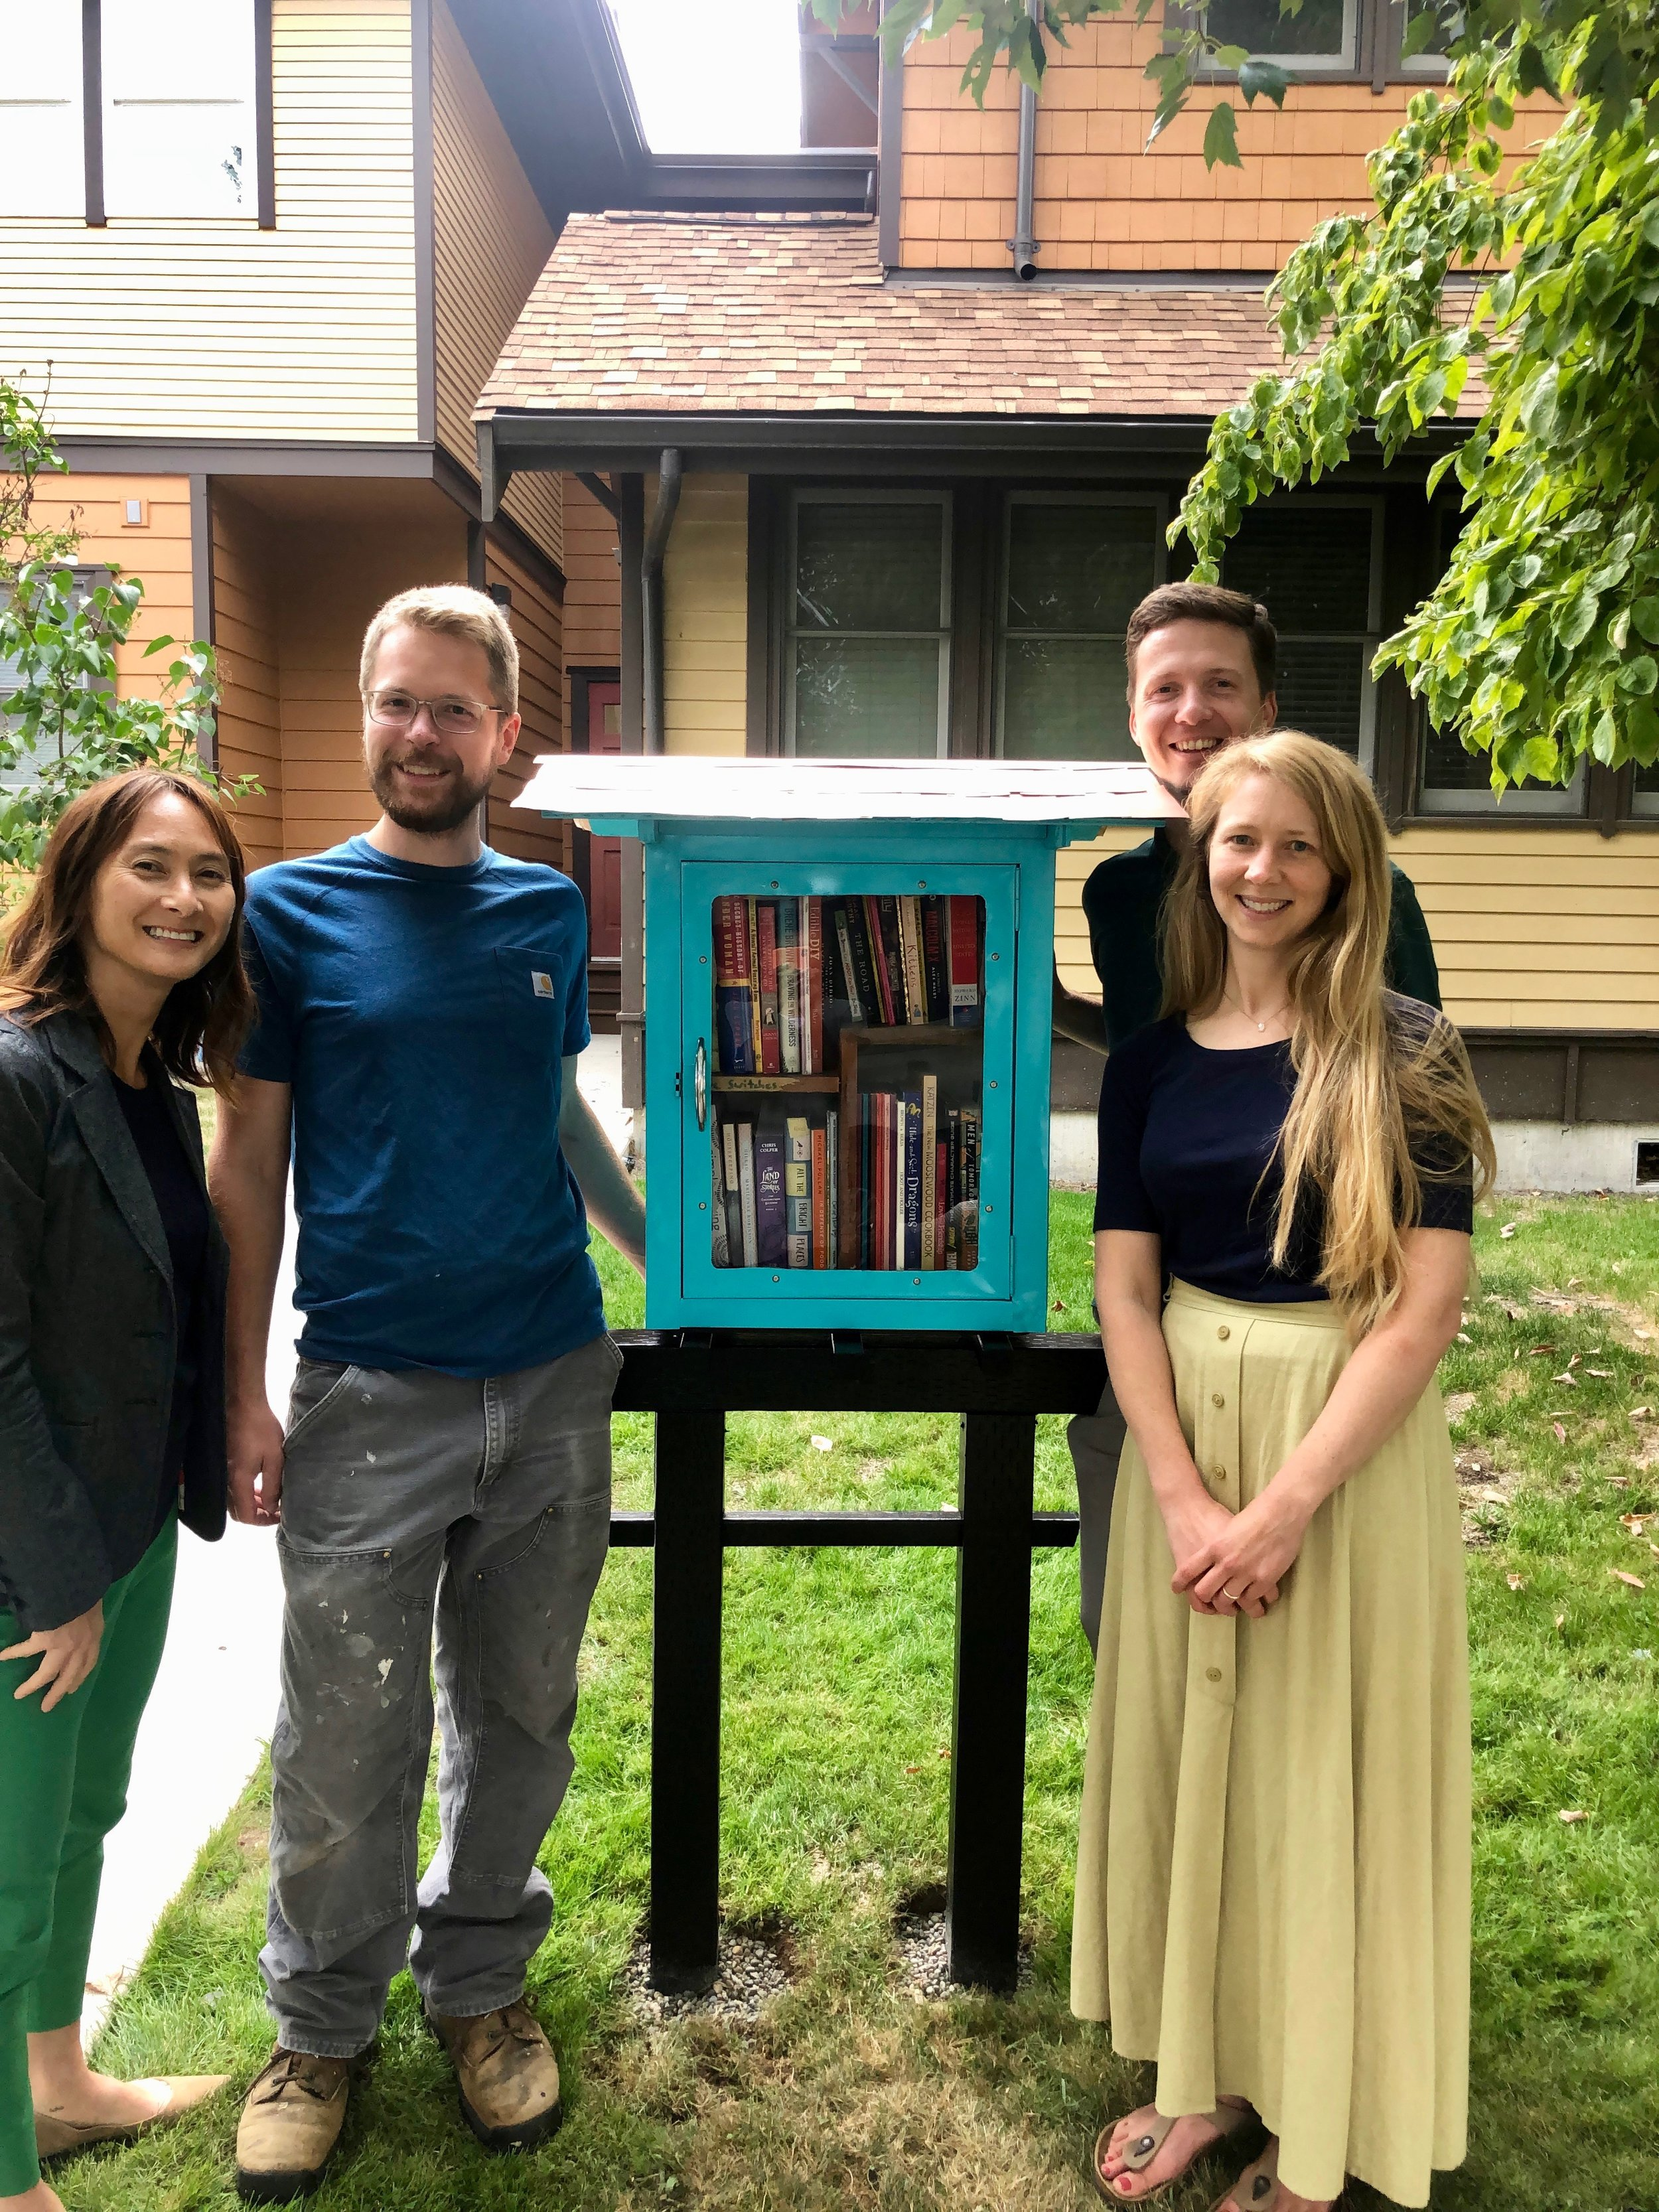 We love the new Peace Library! Jamie Brooks, Aaron Skwirut (designer & builder), Michael & Gretchen Duggan gathered around the library on installation day.